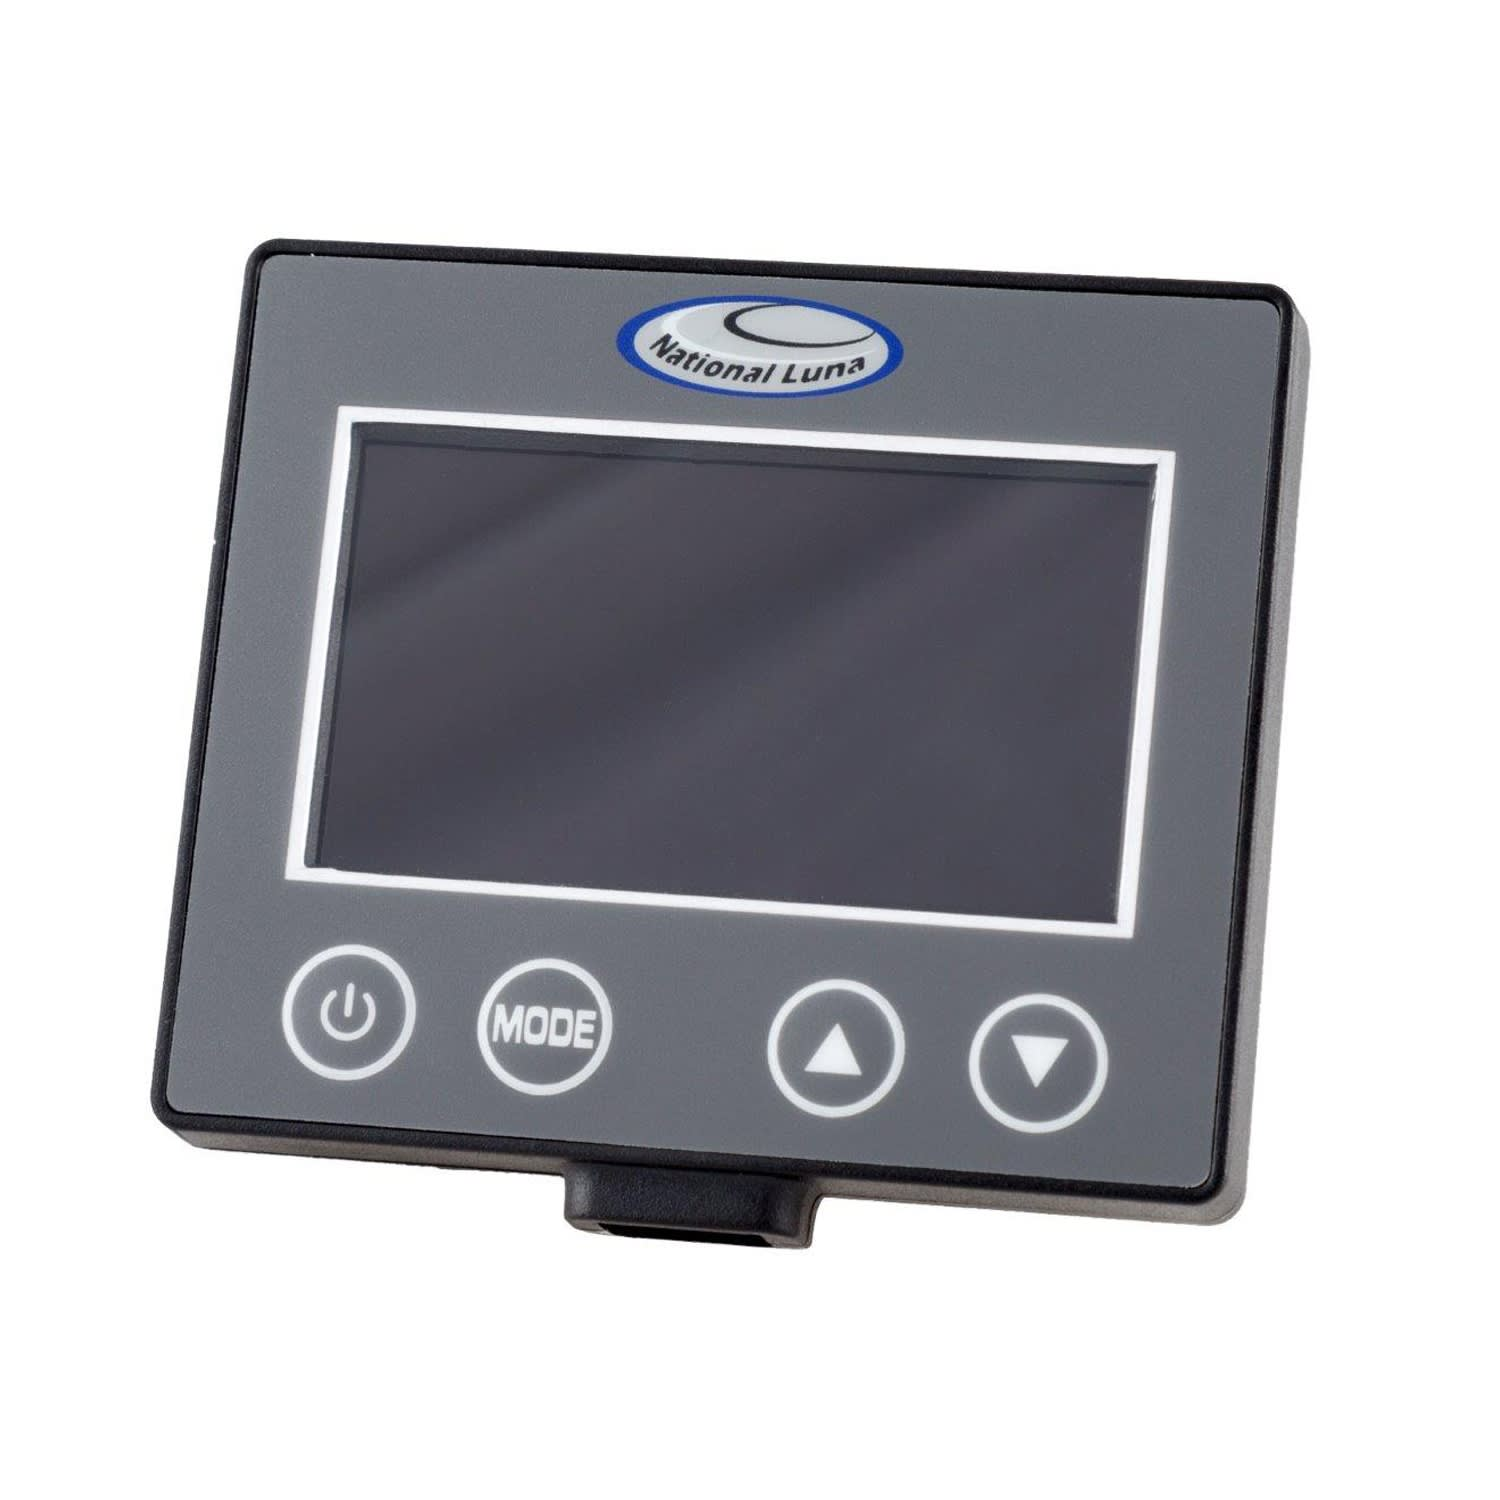 National Luna DC to DC Remote Monitor